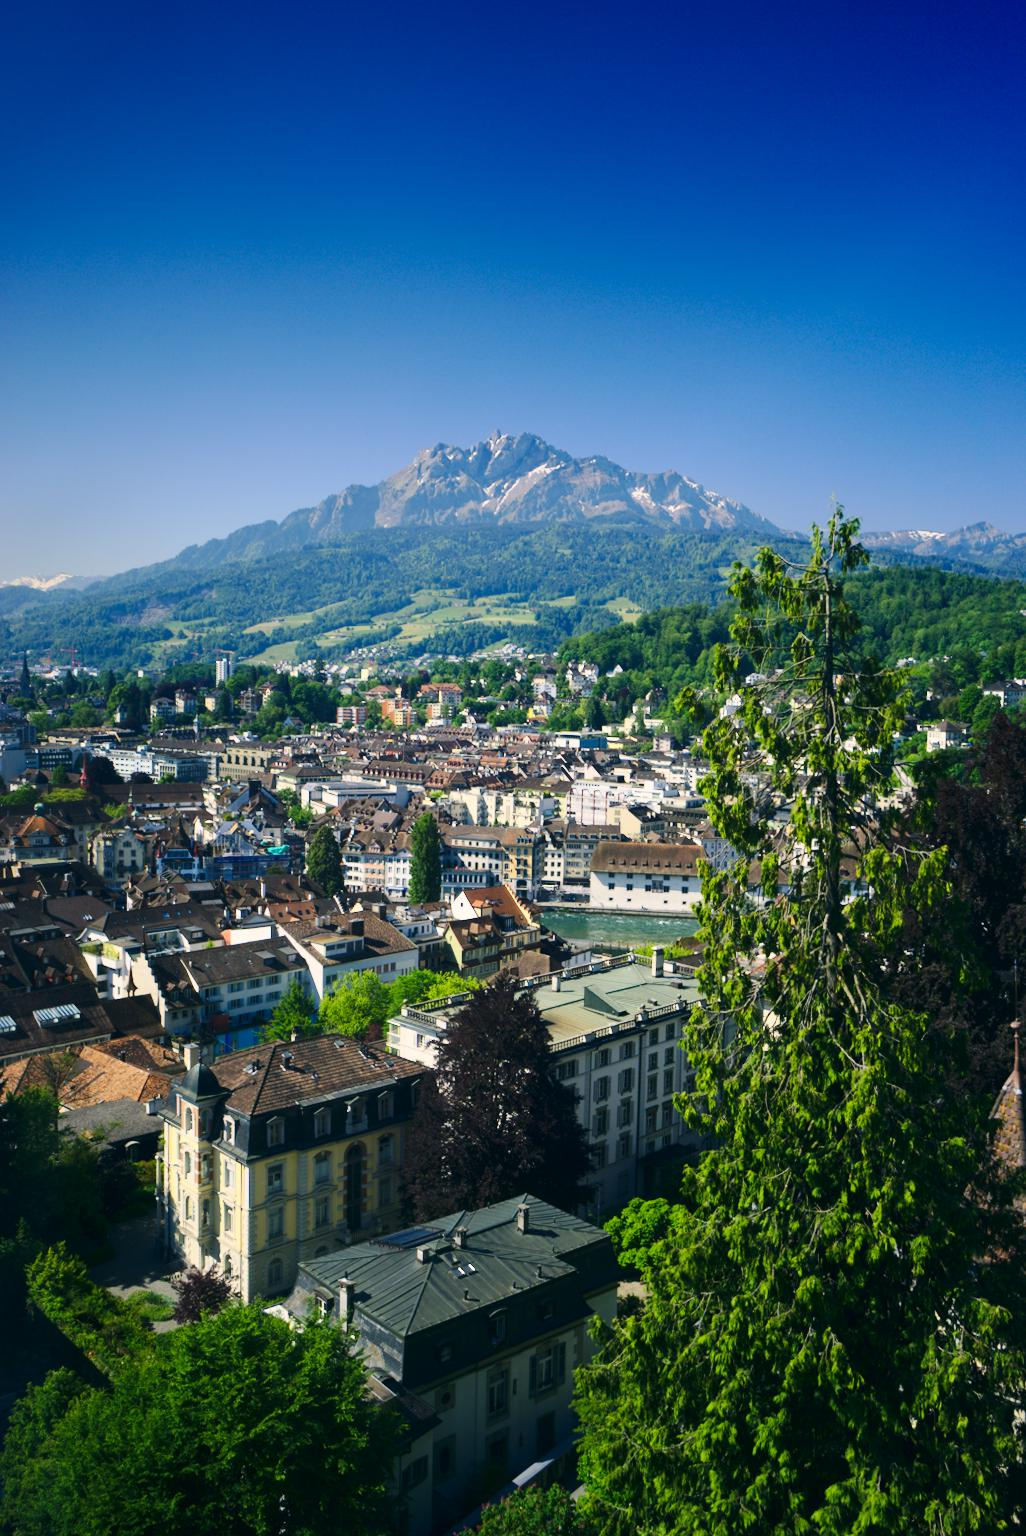 {filename}/img/luzern-1.jpg